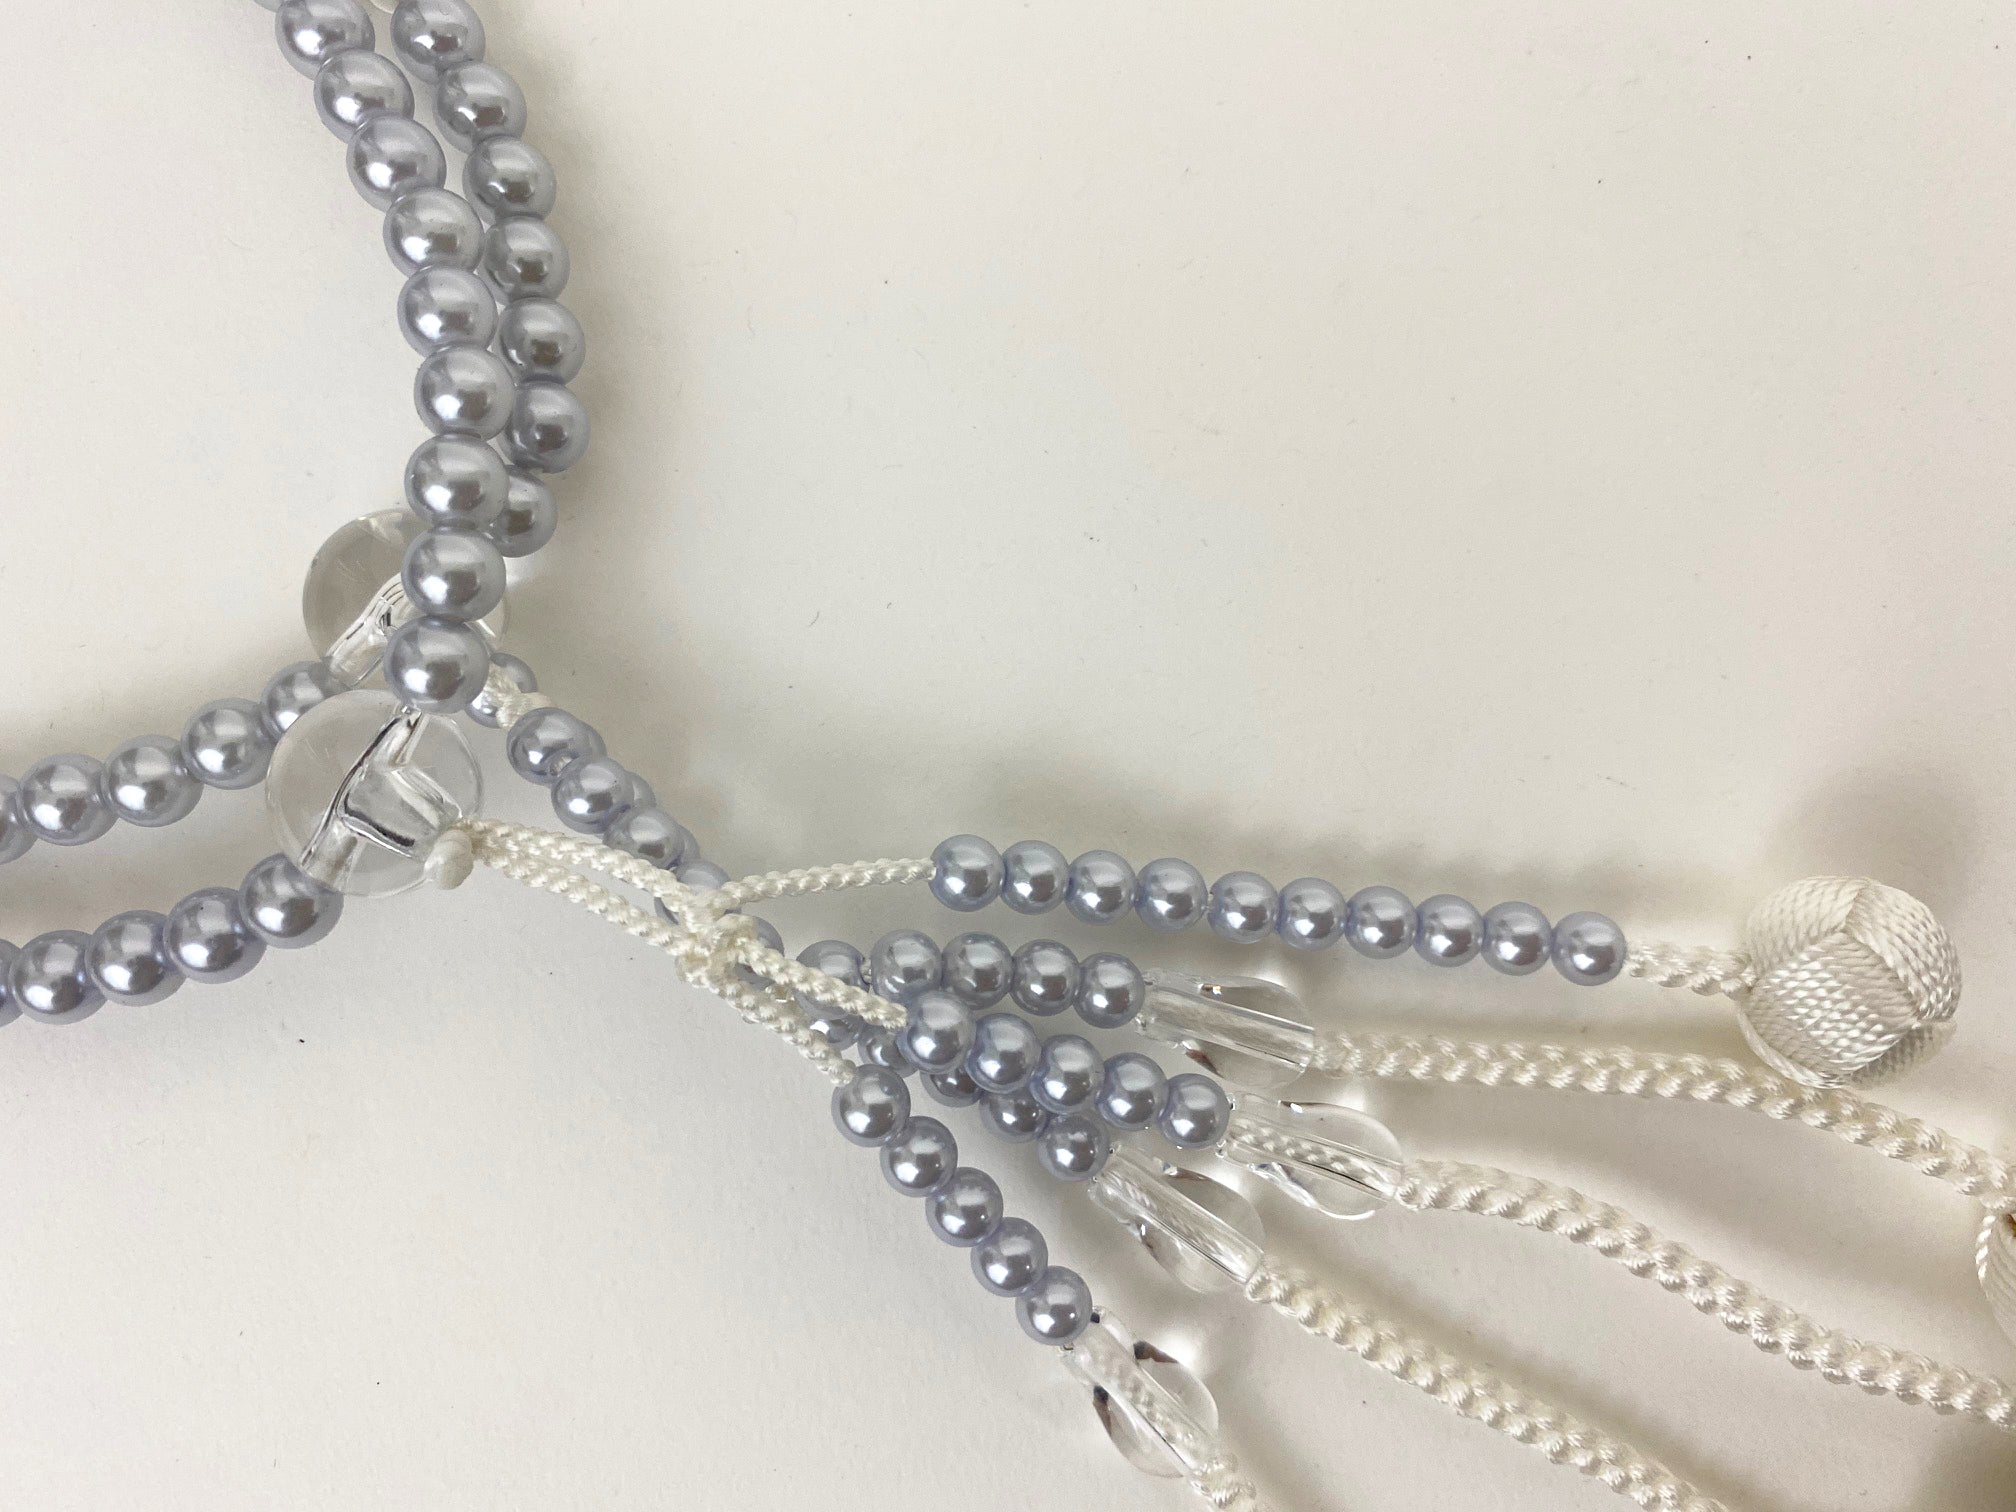 Bluish Grey Pearl Beads with Knitted Tassels